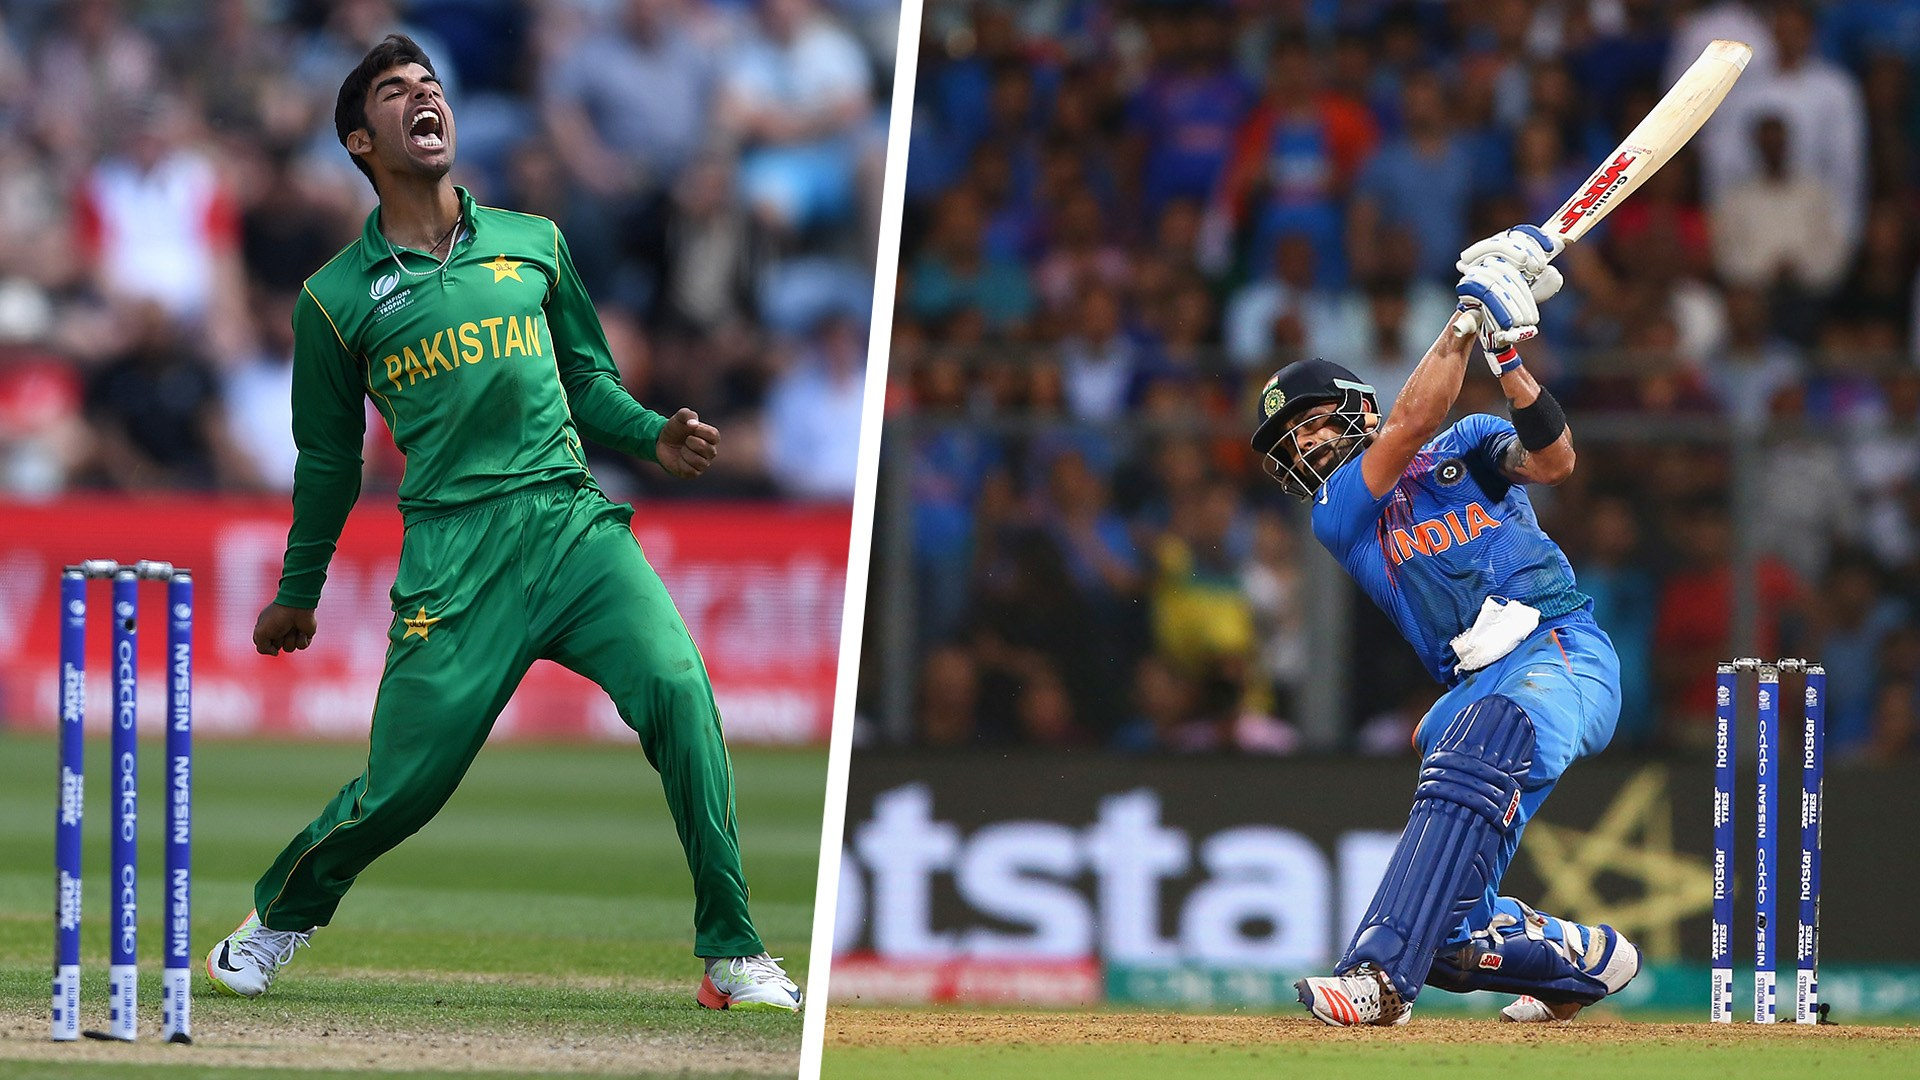 India vs Pakistan 2019 ICC Cricket World Cup IND vs PAK